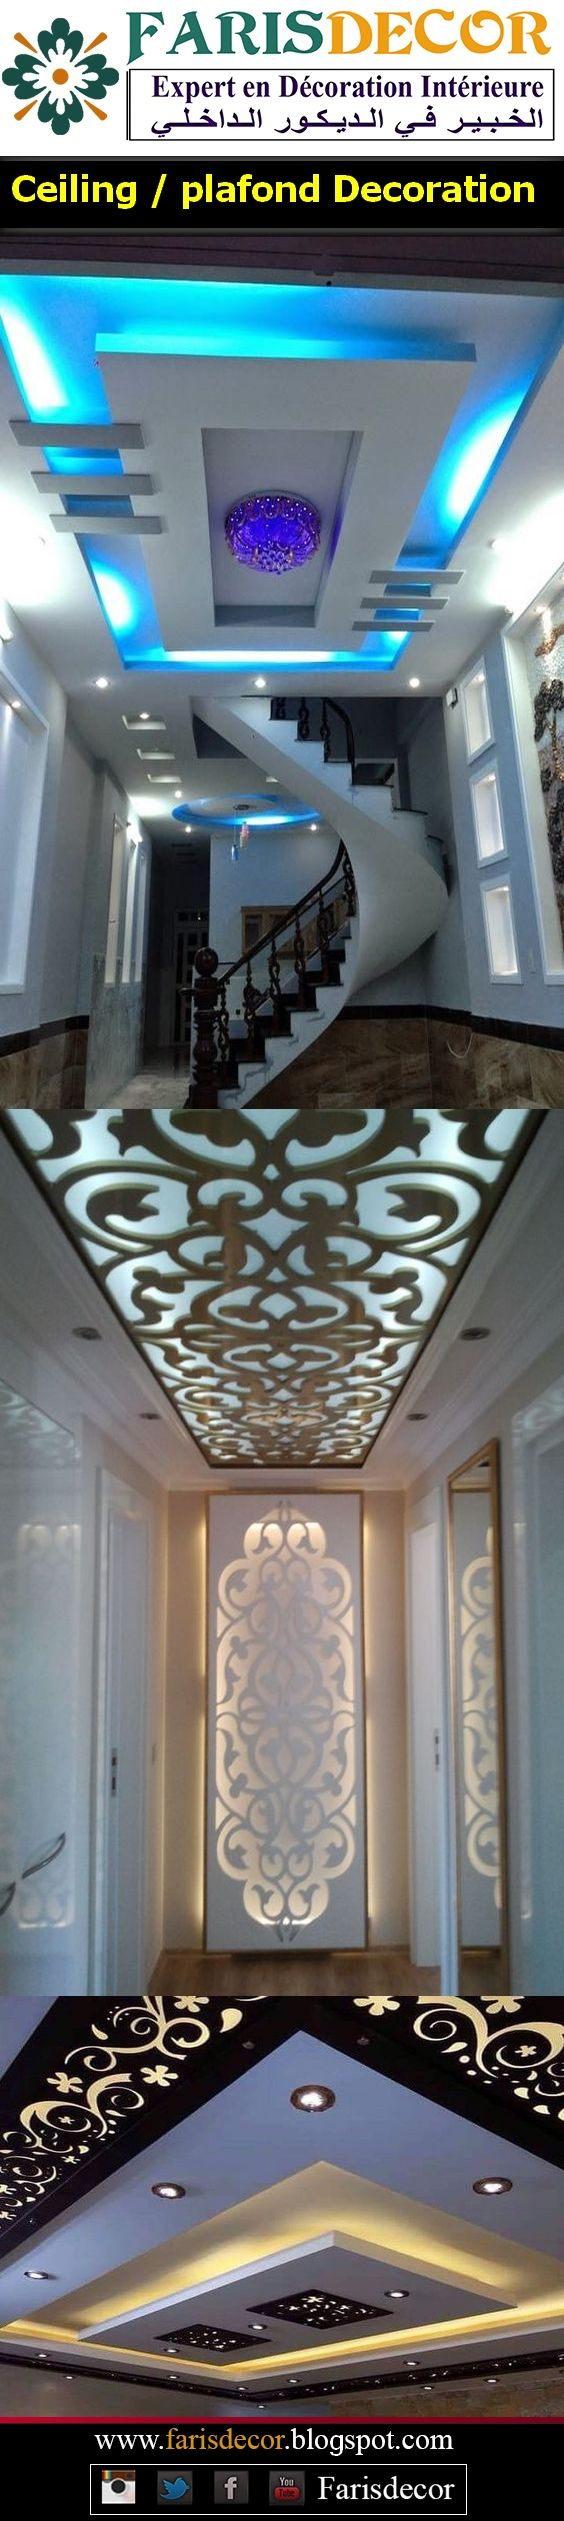 Ceiling / plafond Decoration #Décoration #Architecture #House  #Luxe #Moderne #Floors #Ceiling #Wall #Afrique #Europe #Casablanca #Maroc #Morocco